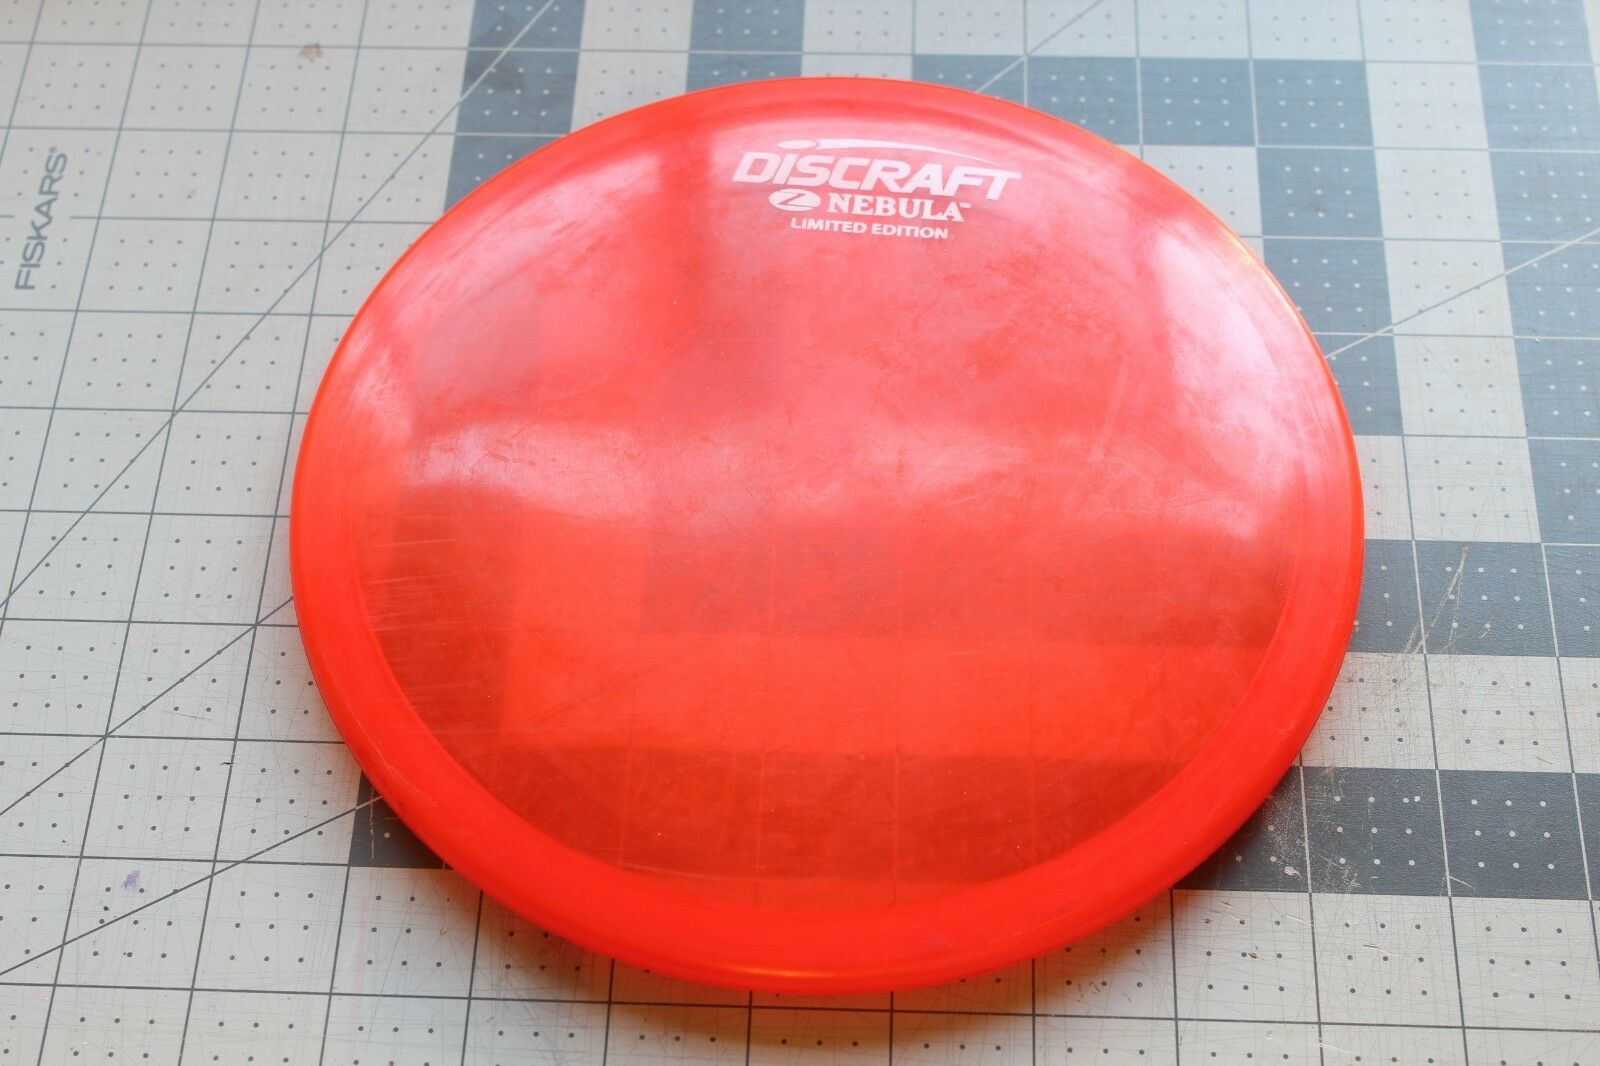 OOP Discraft Nebula rosso EliteZ 169.8g   Limited Edition  Very Rare